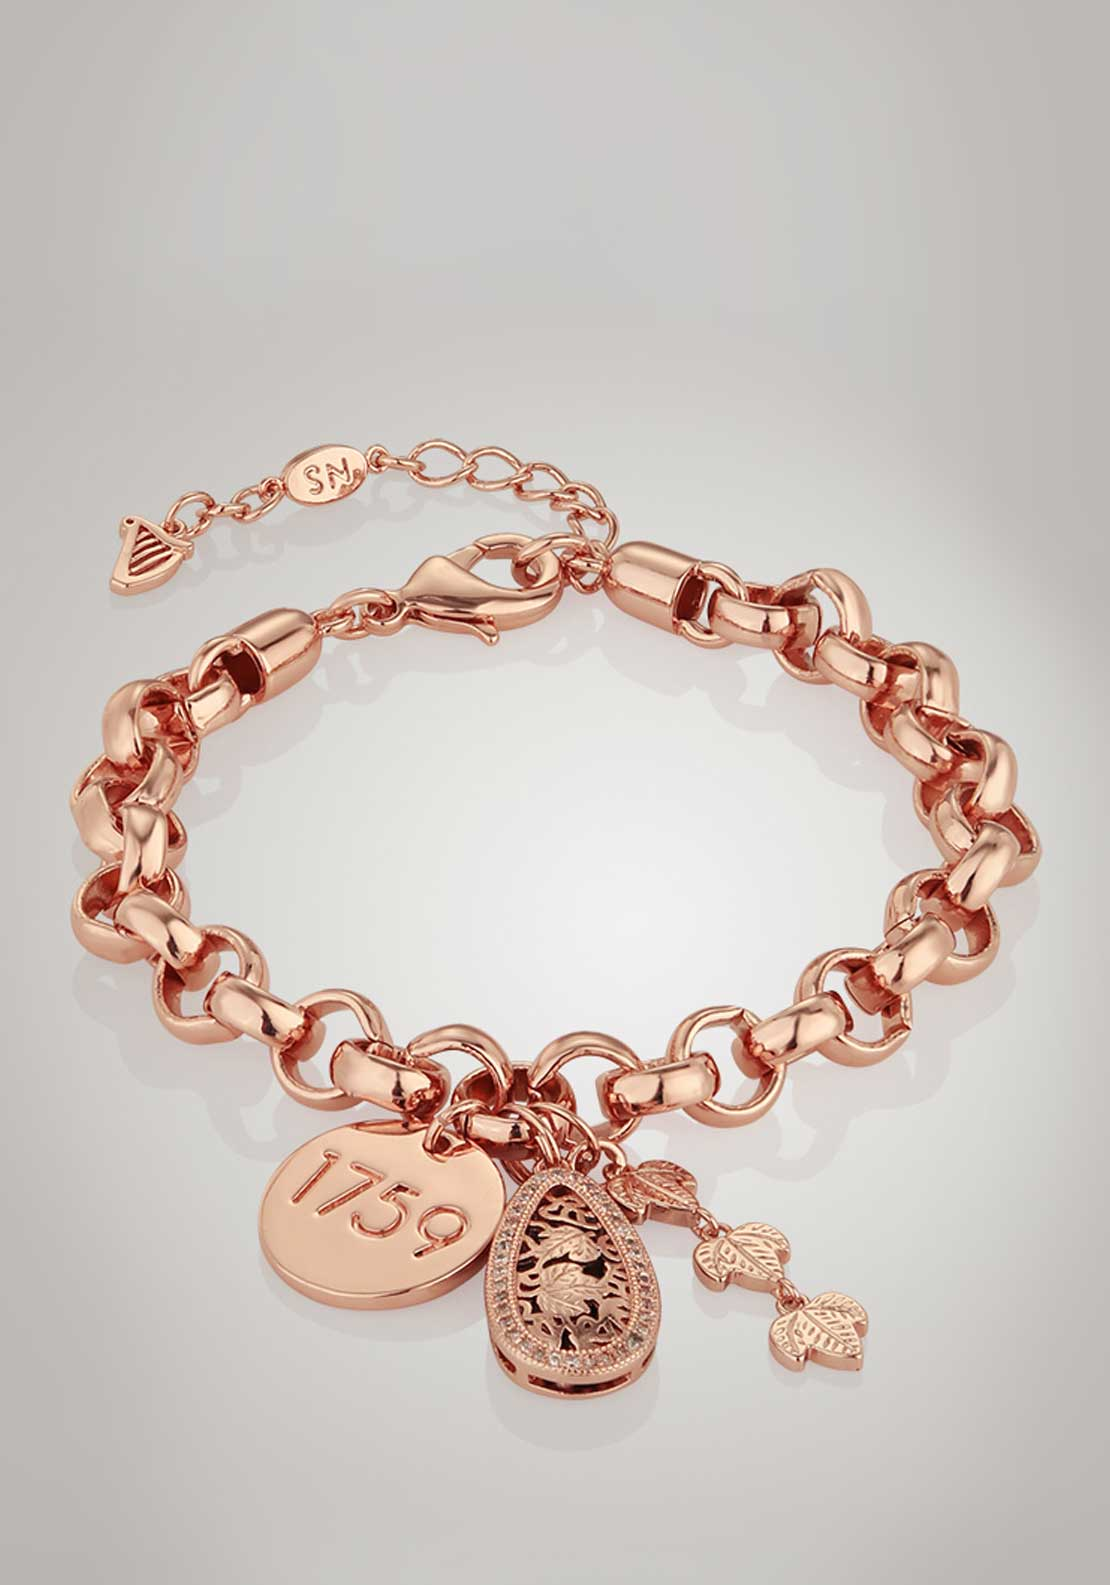 Newbridge Silverware Guinness Heavy Charm Bracelet, Rose Gold